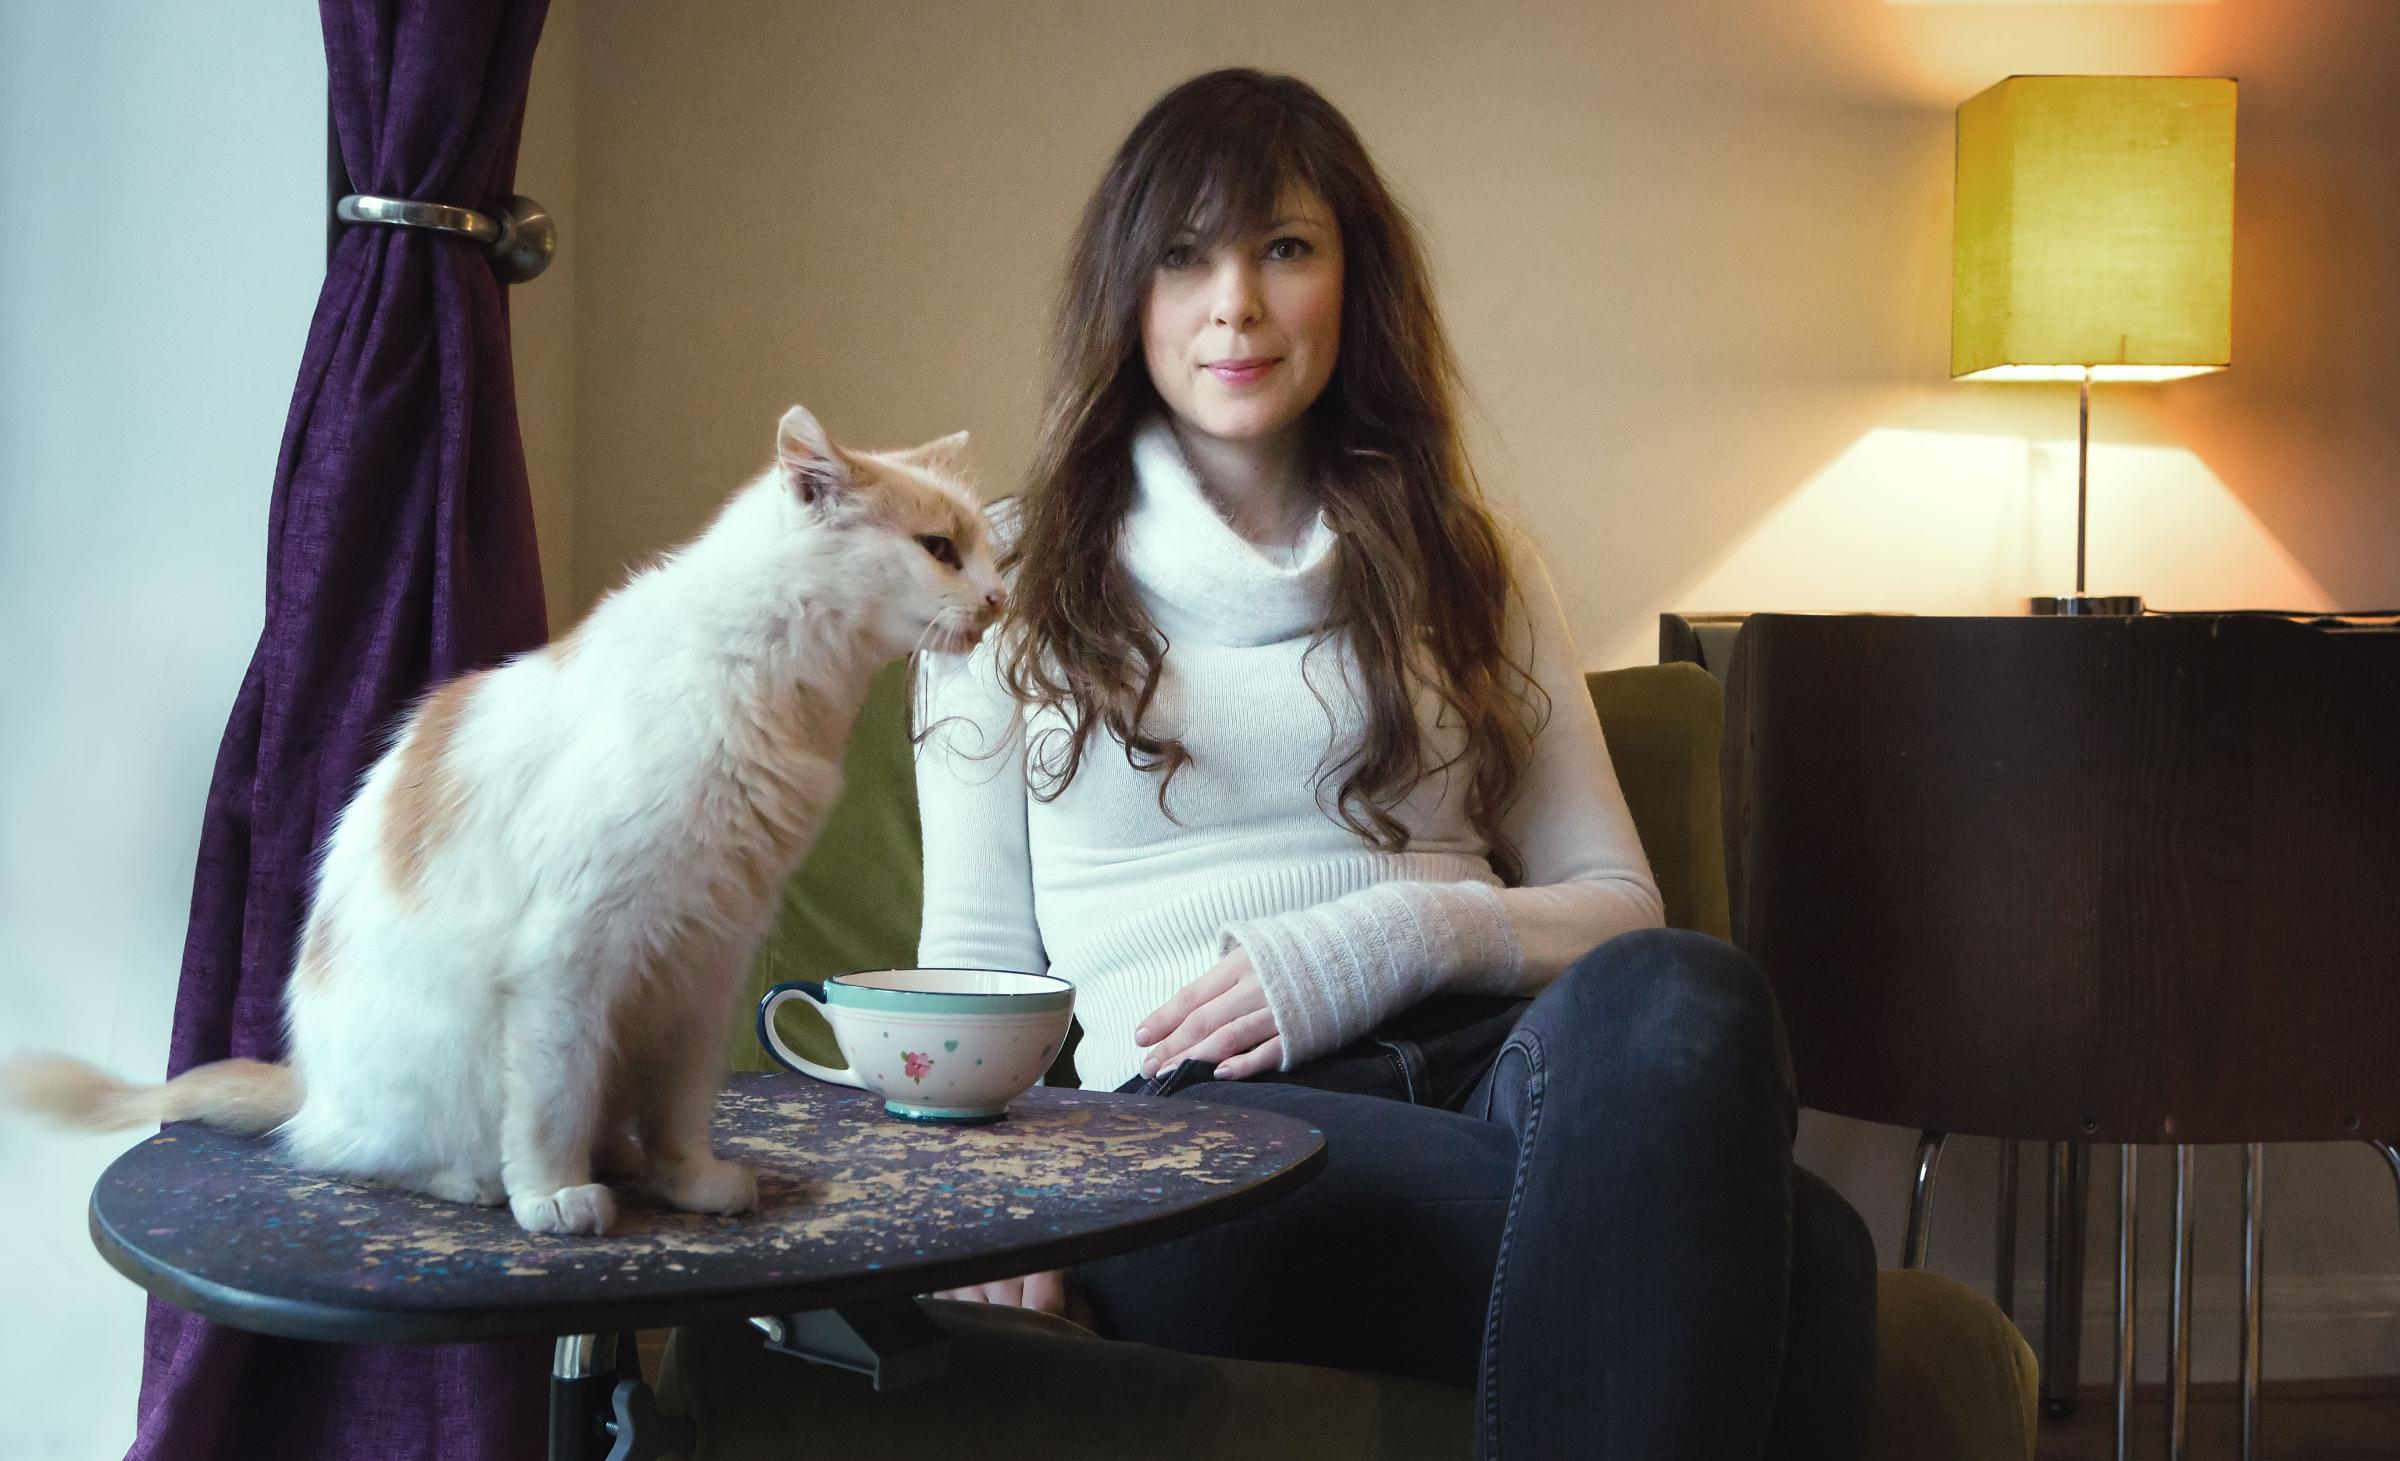 Jaya Da Costa plans to open the first cat cafe in Bournemouth. rodlewisphotography.co.uk.